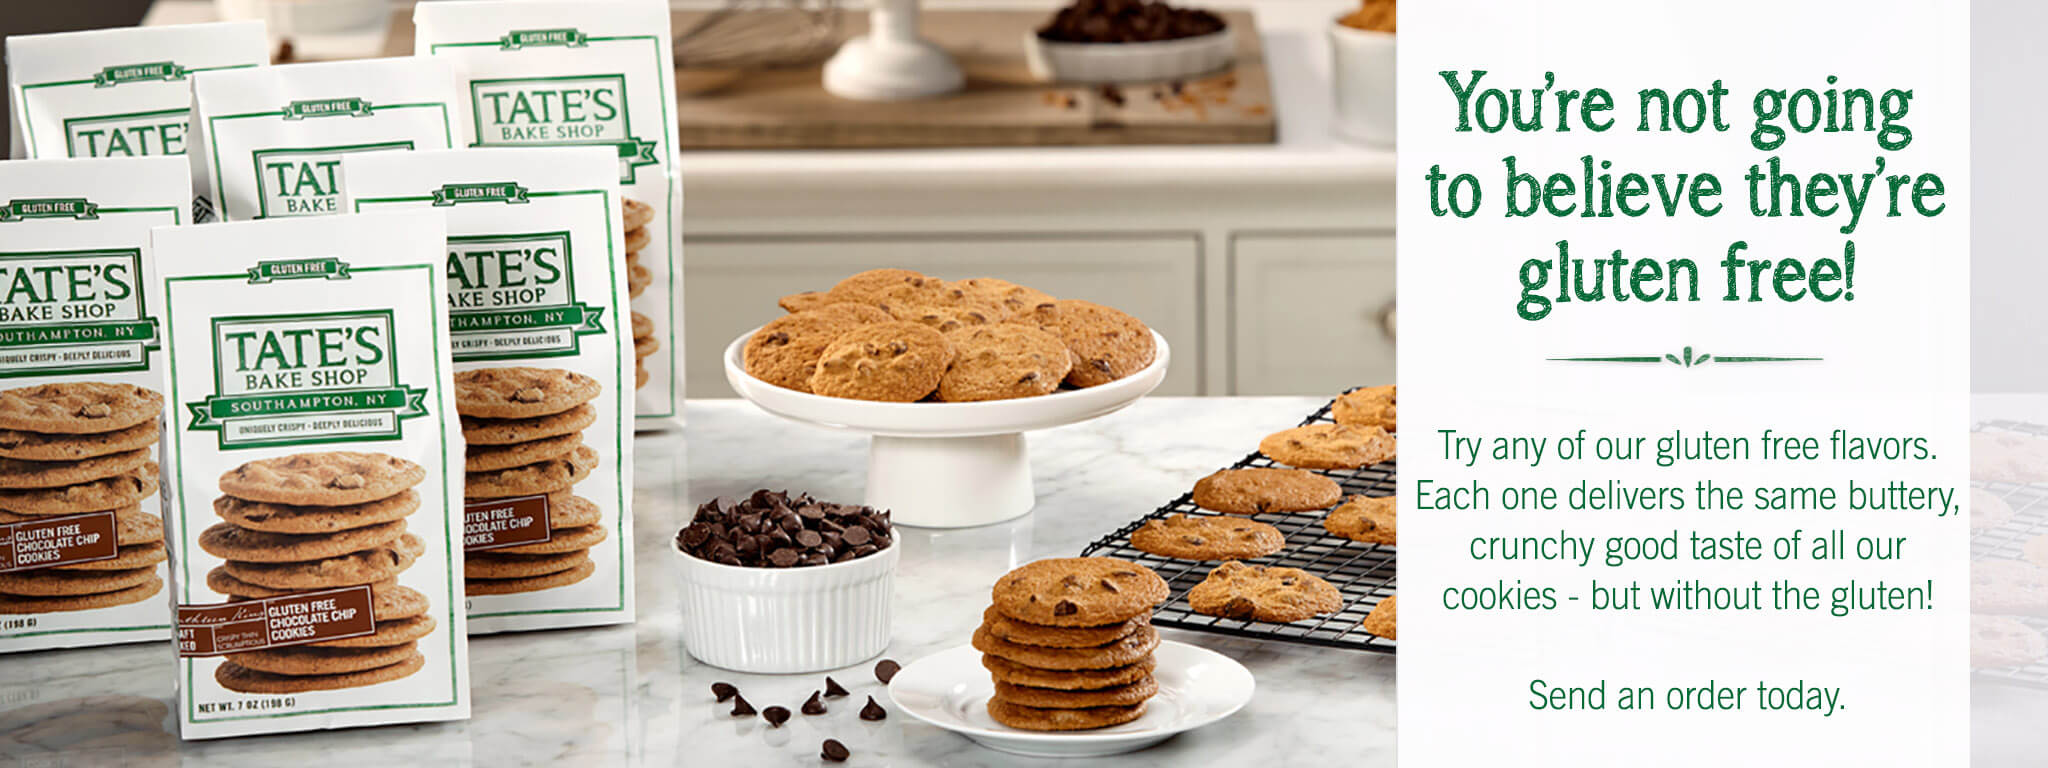 Gluten free cookies and gluten free gifts tates bakeshop gifts gluten free cookies negle Image collections